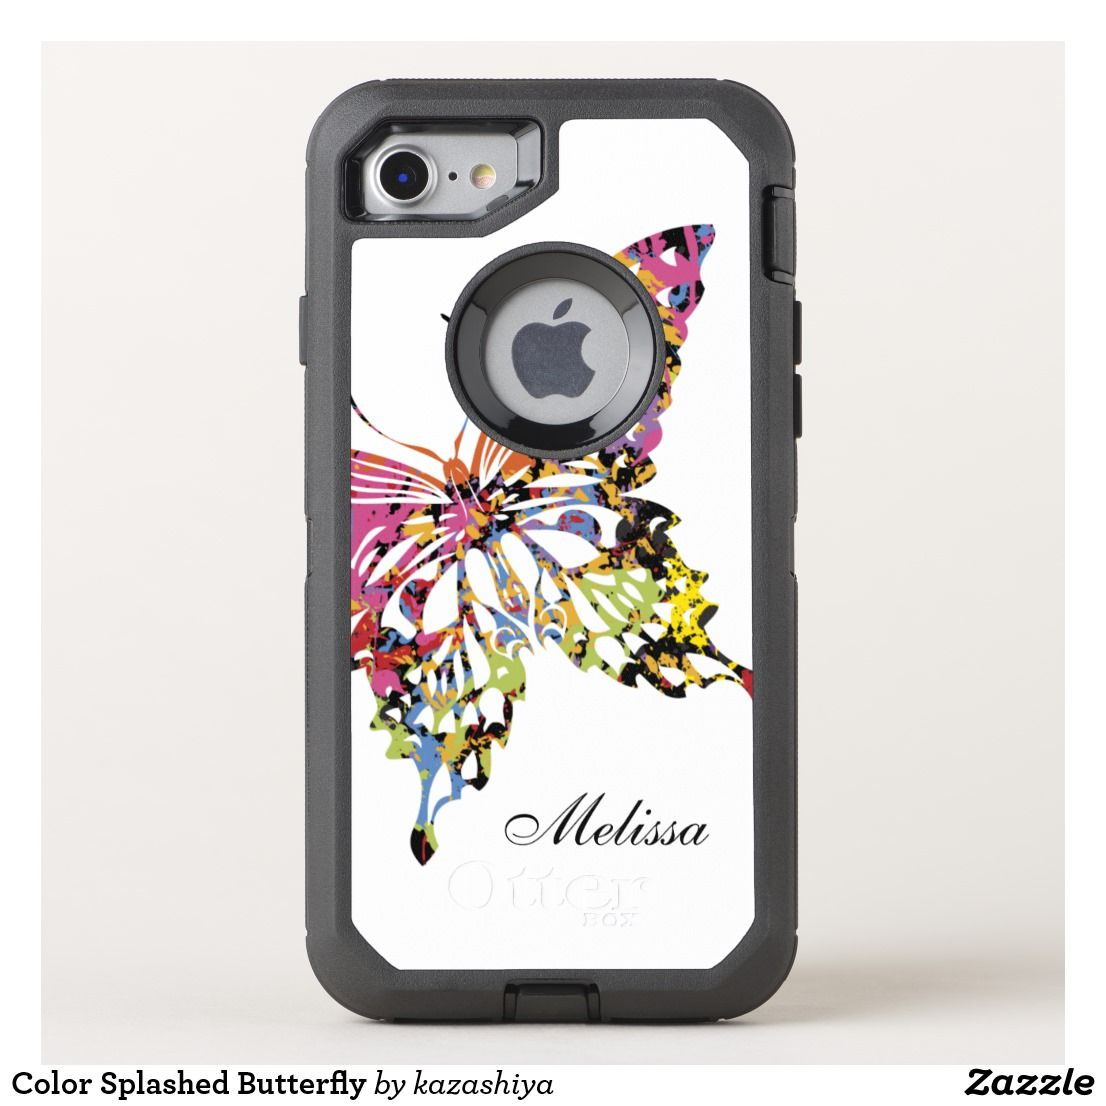 Color splashed butterfly otterbox iphone case